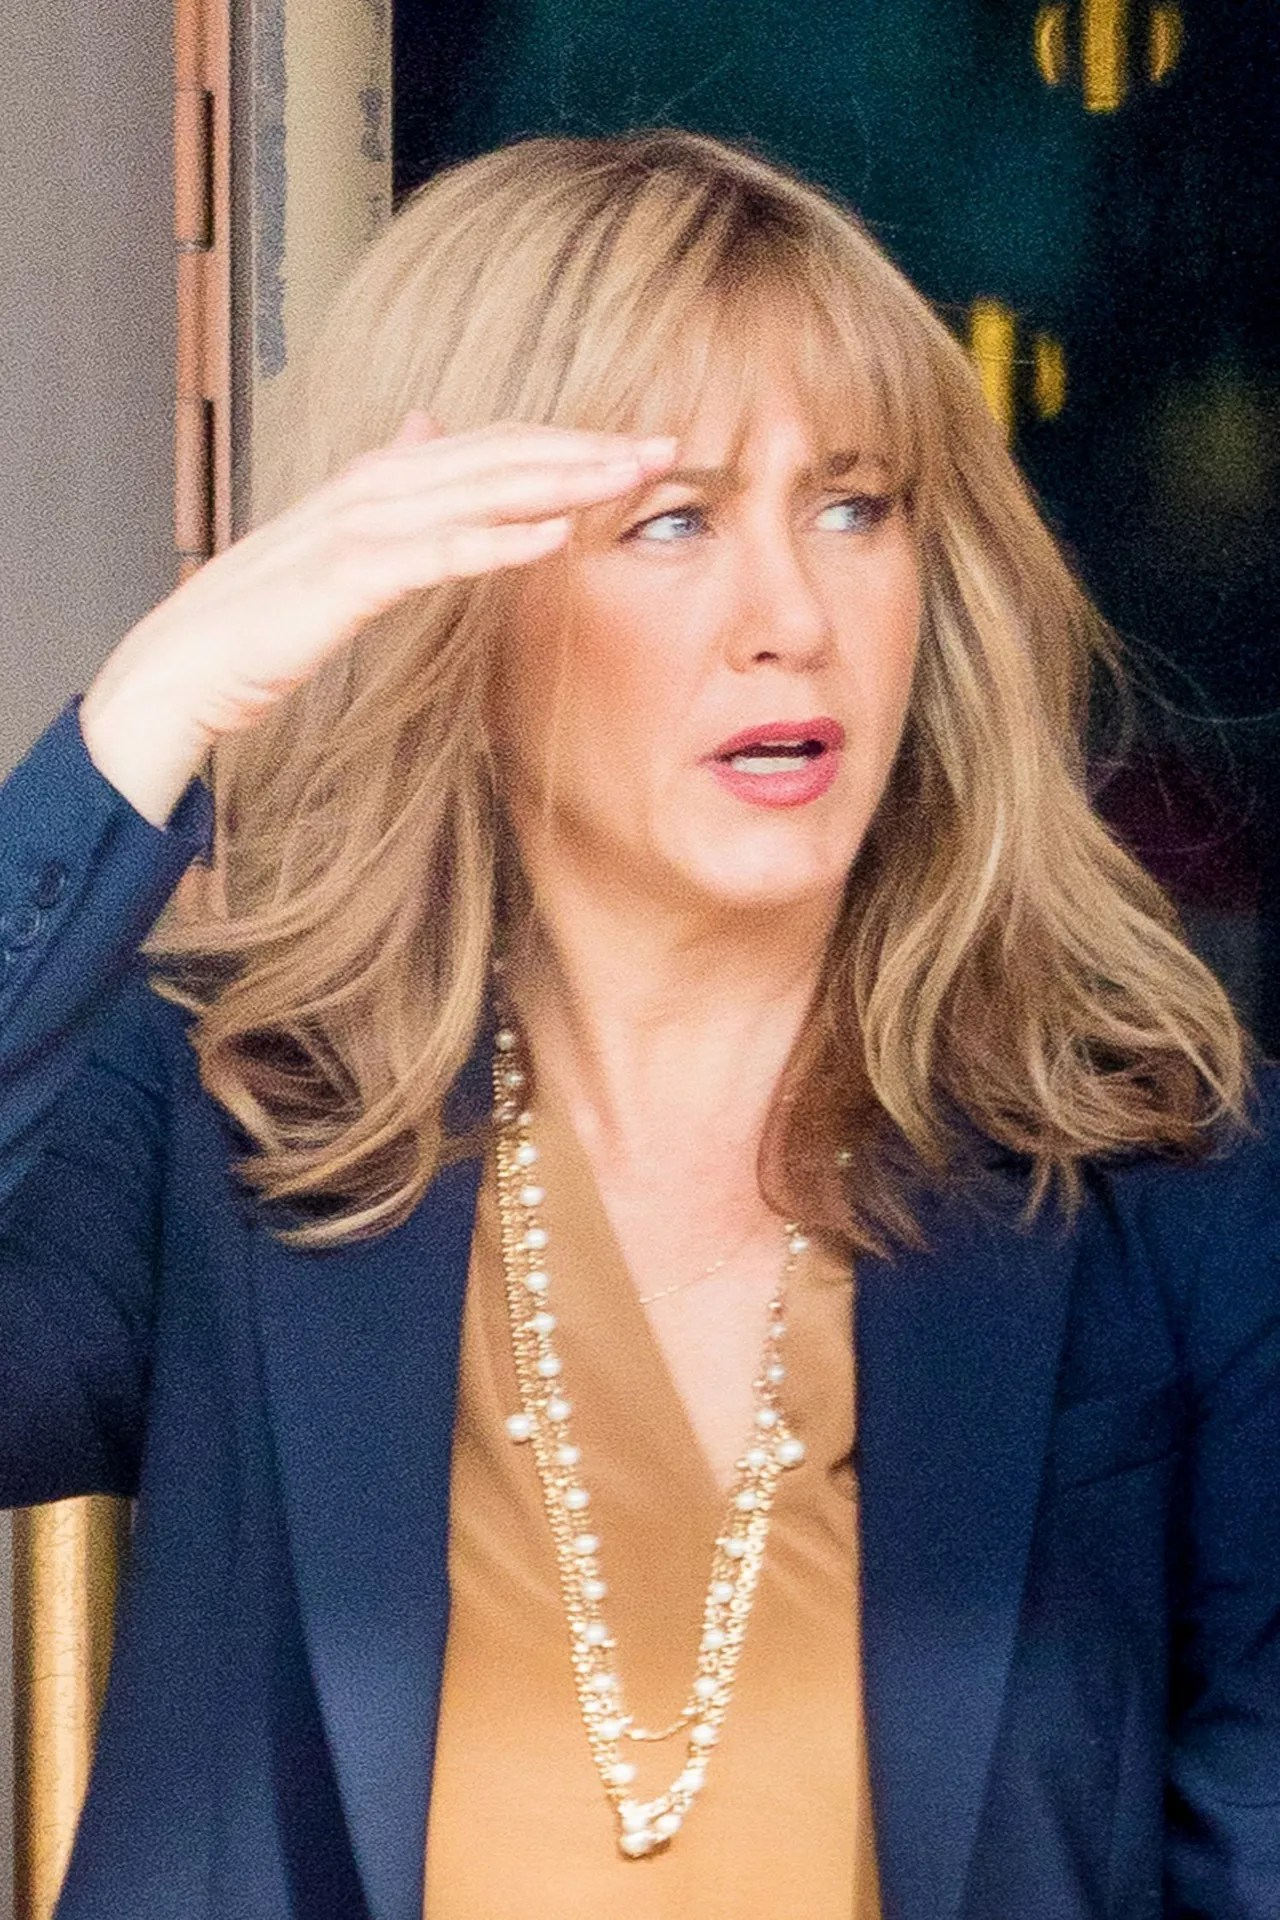 This Is What Jennifer Aniston Looks Like With a Mom Haircut